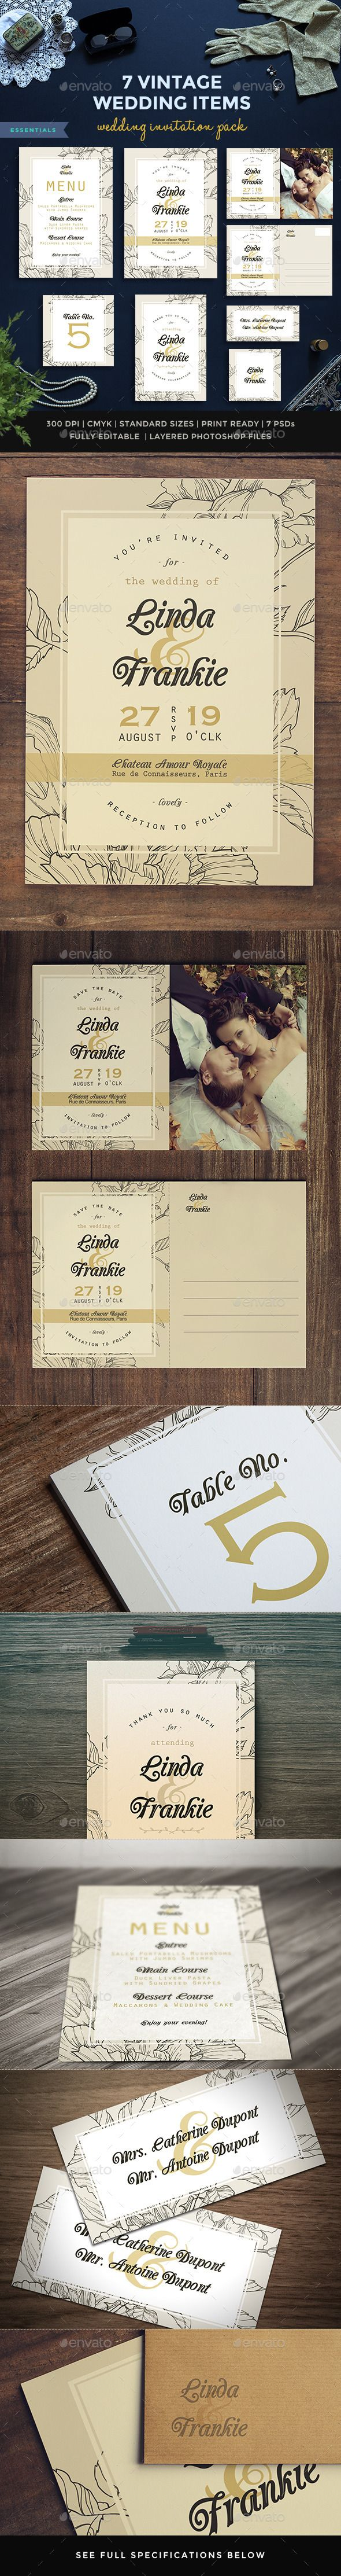 free wedding invitation psd%0A   Vintage Items  Wedding Pack II